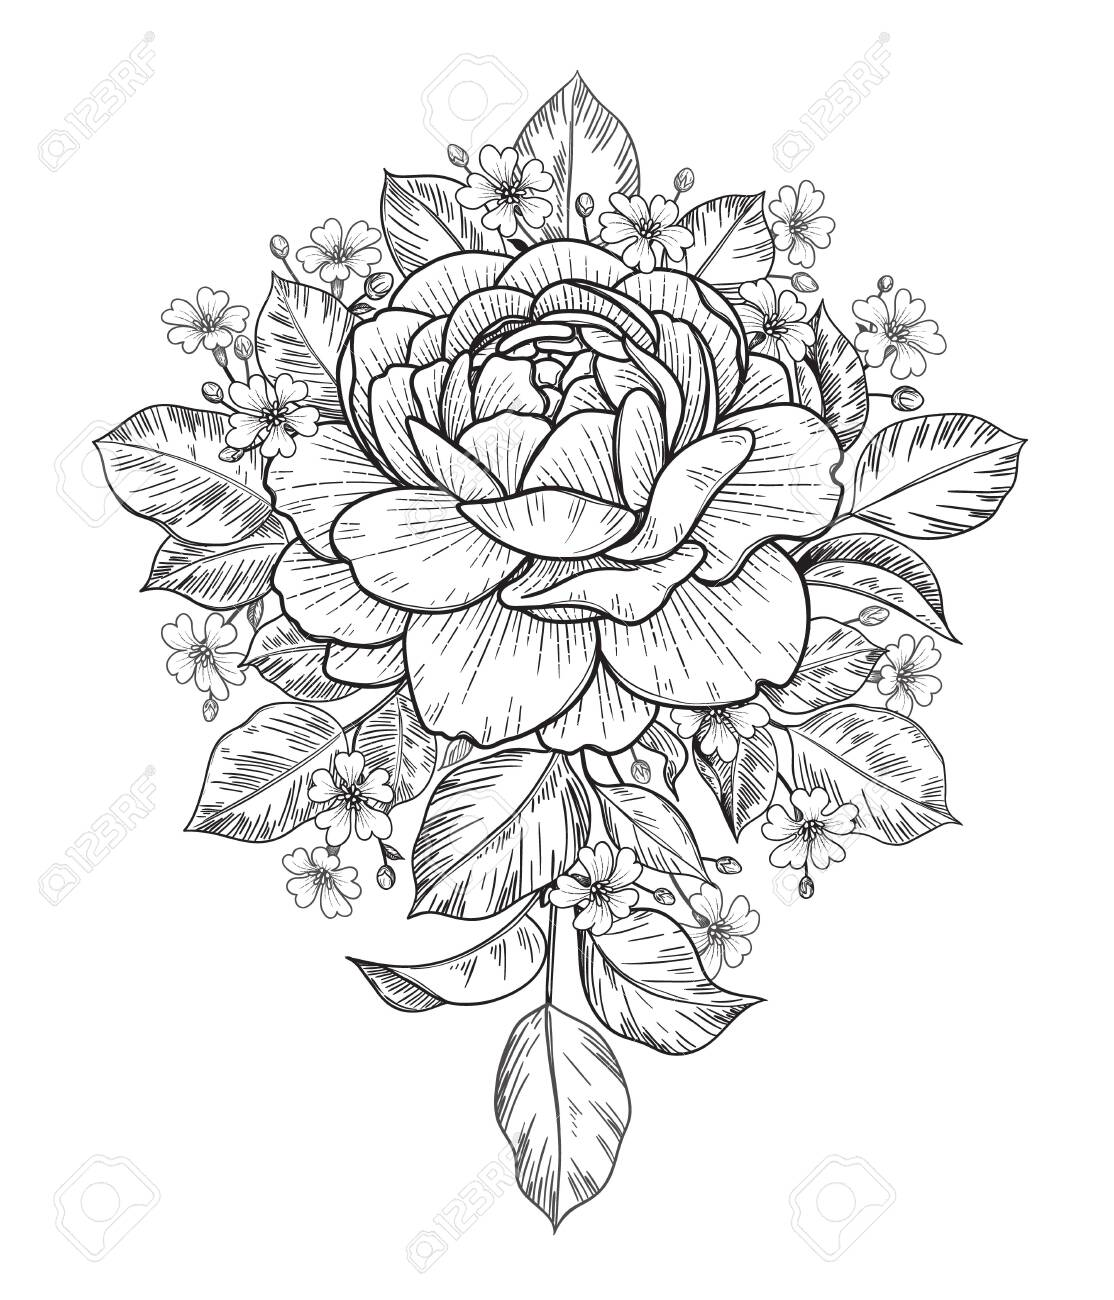 Hand drawn rose and small gypsophila flowers bunch isolated on white. Vector monochrome elegant floral composition in vintage style, t-shirt, tattoo design, coloring page, wedding decoration. - 147801495